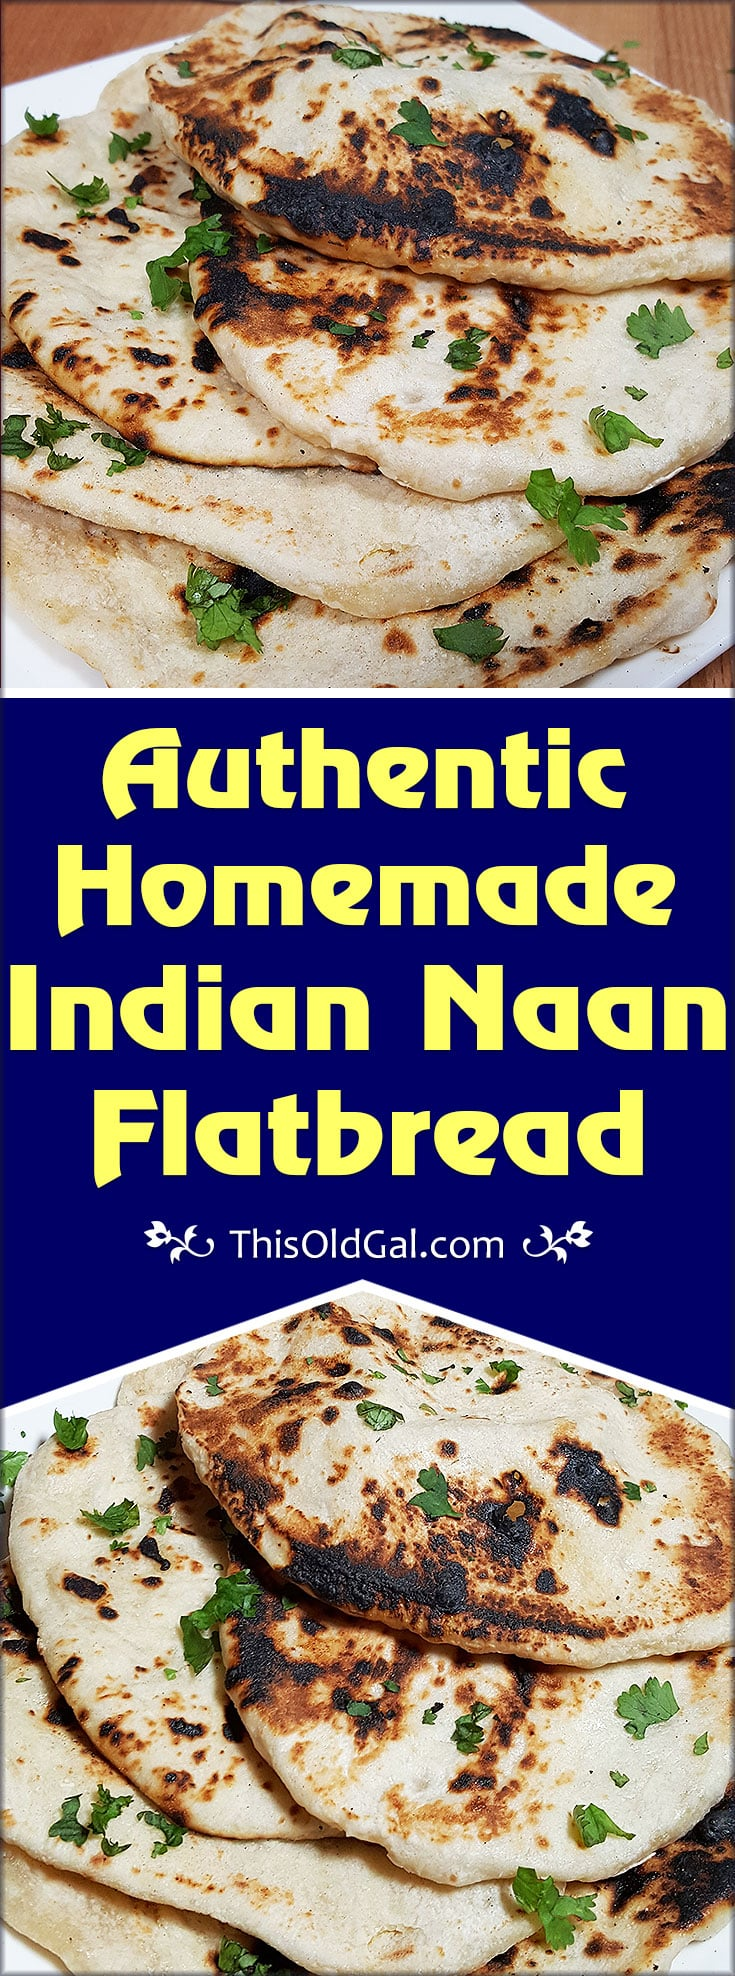 Authentic Homemade Indian Naan Flatbread